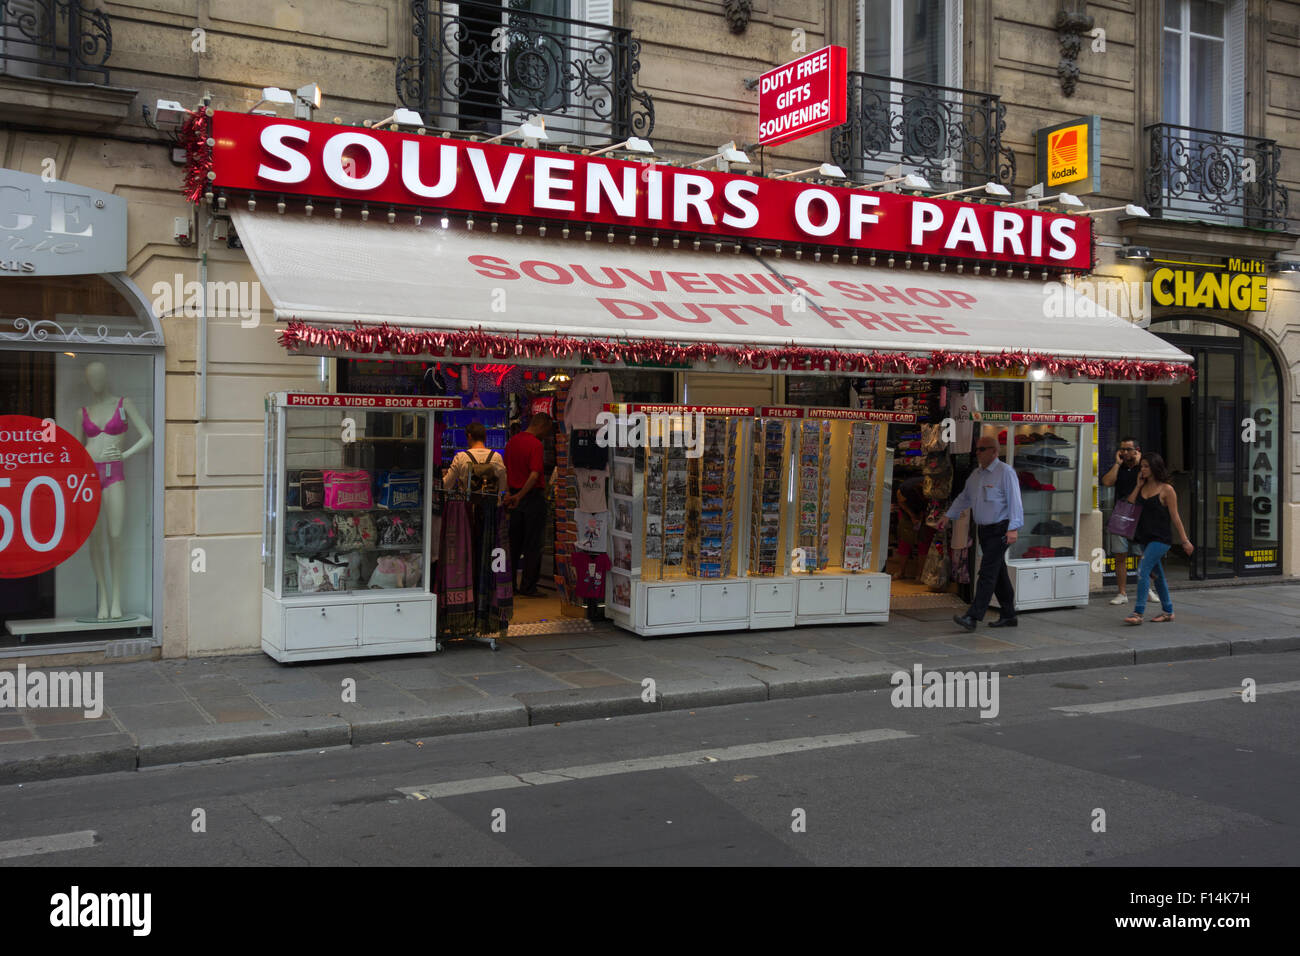 souvenir shop in rue de tilsitt paris france stock photo royalty free image 86769413 alamy. Black Bedroom Furniture Sets. Home Design Ideas